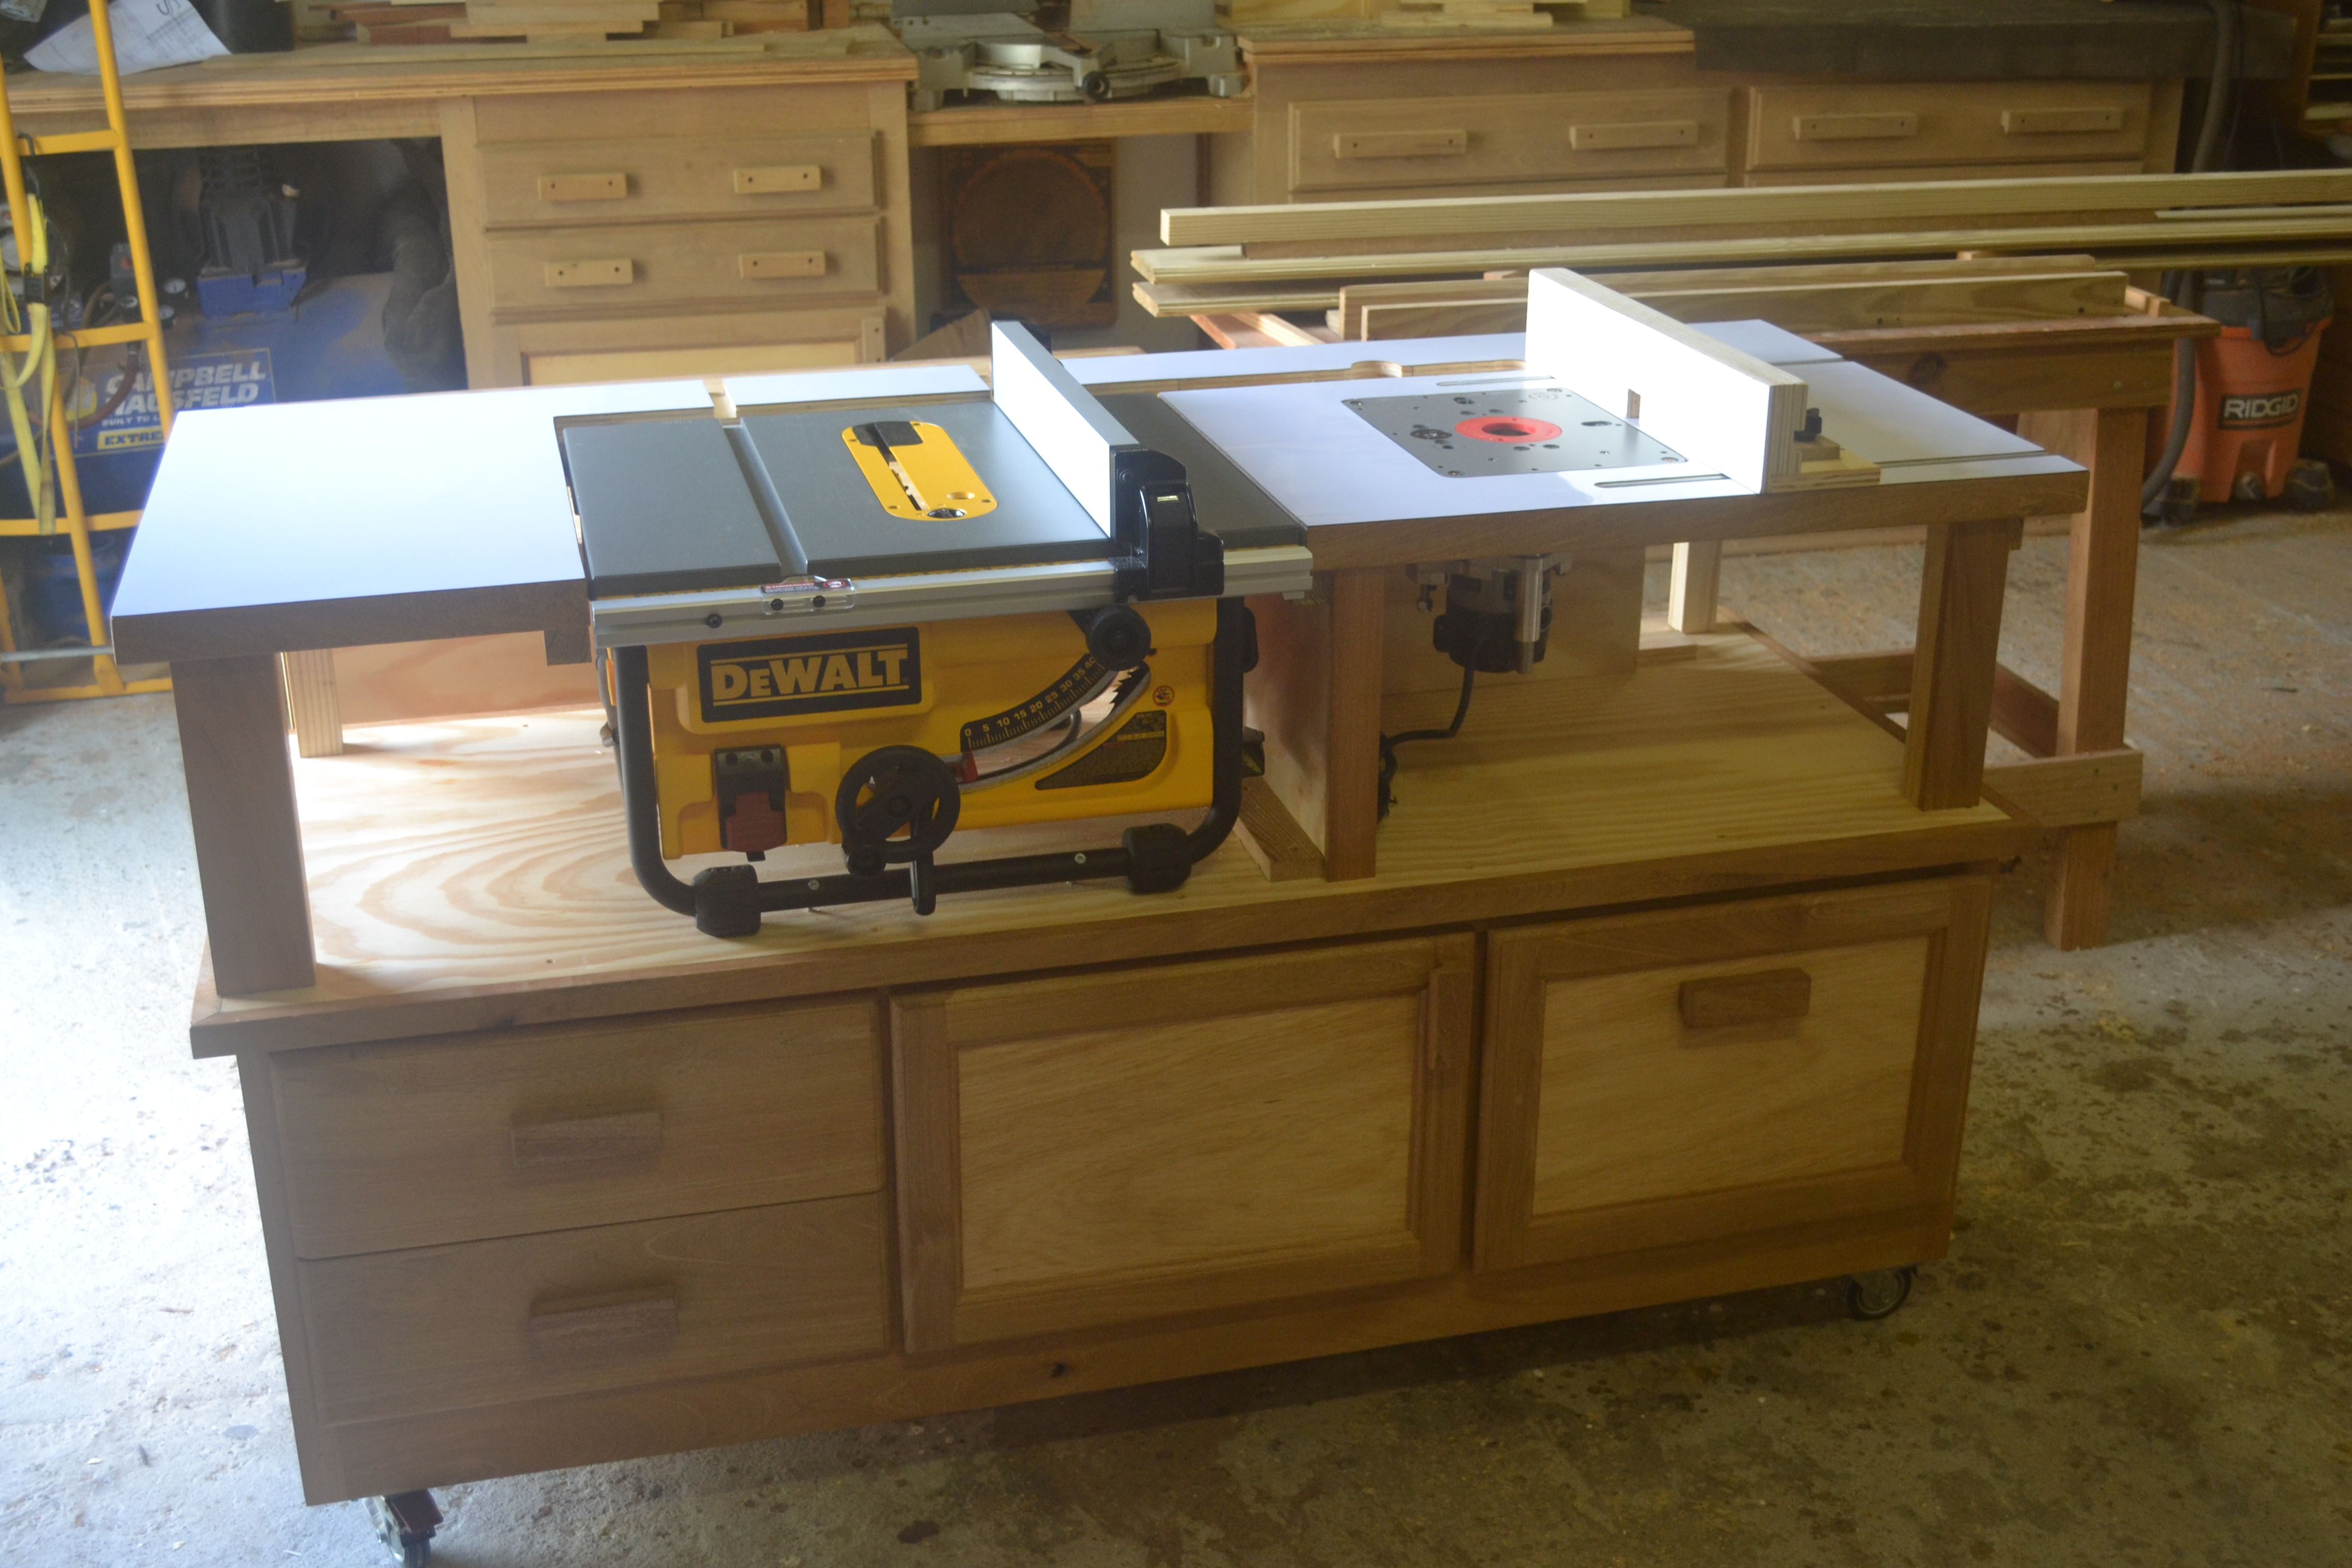 Mobile router table plans - Table Saw Router Combo Table On Casters Perfect But No Plans Provided